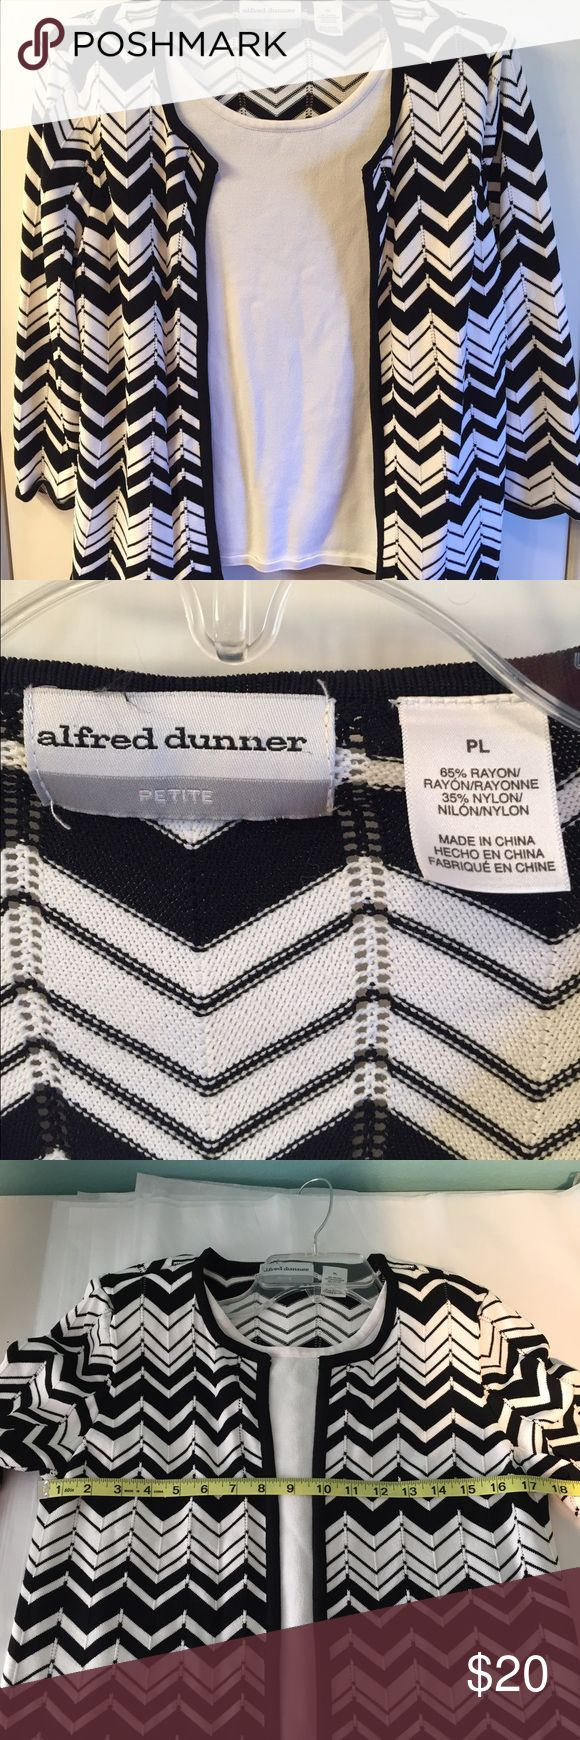 Alfred Dunner Spring Sweater Petite Large Pretty Alfred Dunner Sweater. This looks like a 2 piece set but the white under sweater is sewn in. Like New, NO stains, rips, tears, fading, snags or pilling. Size Petite Large. Please see pictures for measurements. Thank you for your interest. Alfred Dunner Sweaters